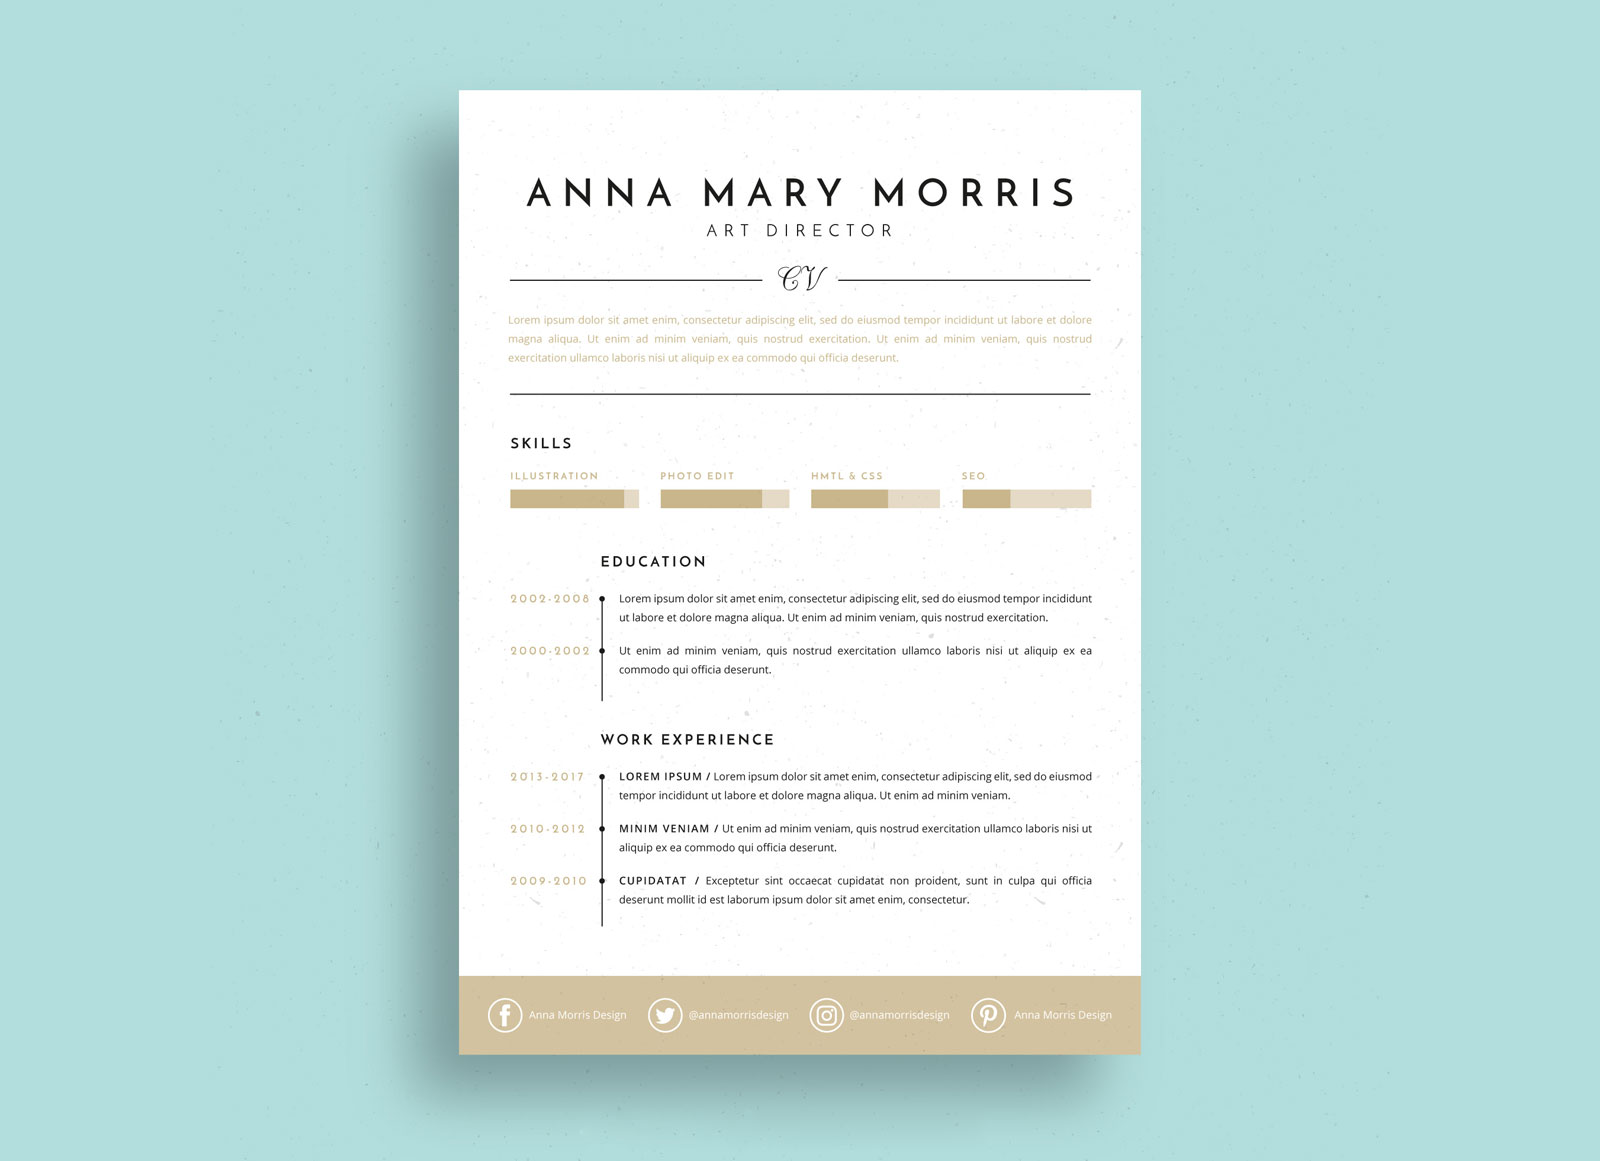 Free-Minimalistic-Ai-Resume-Template-for-Art-Directors